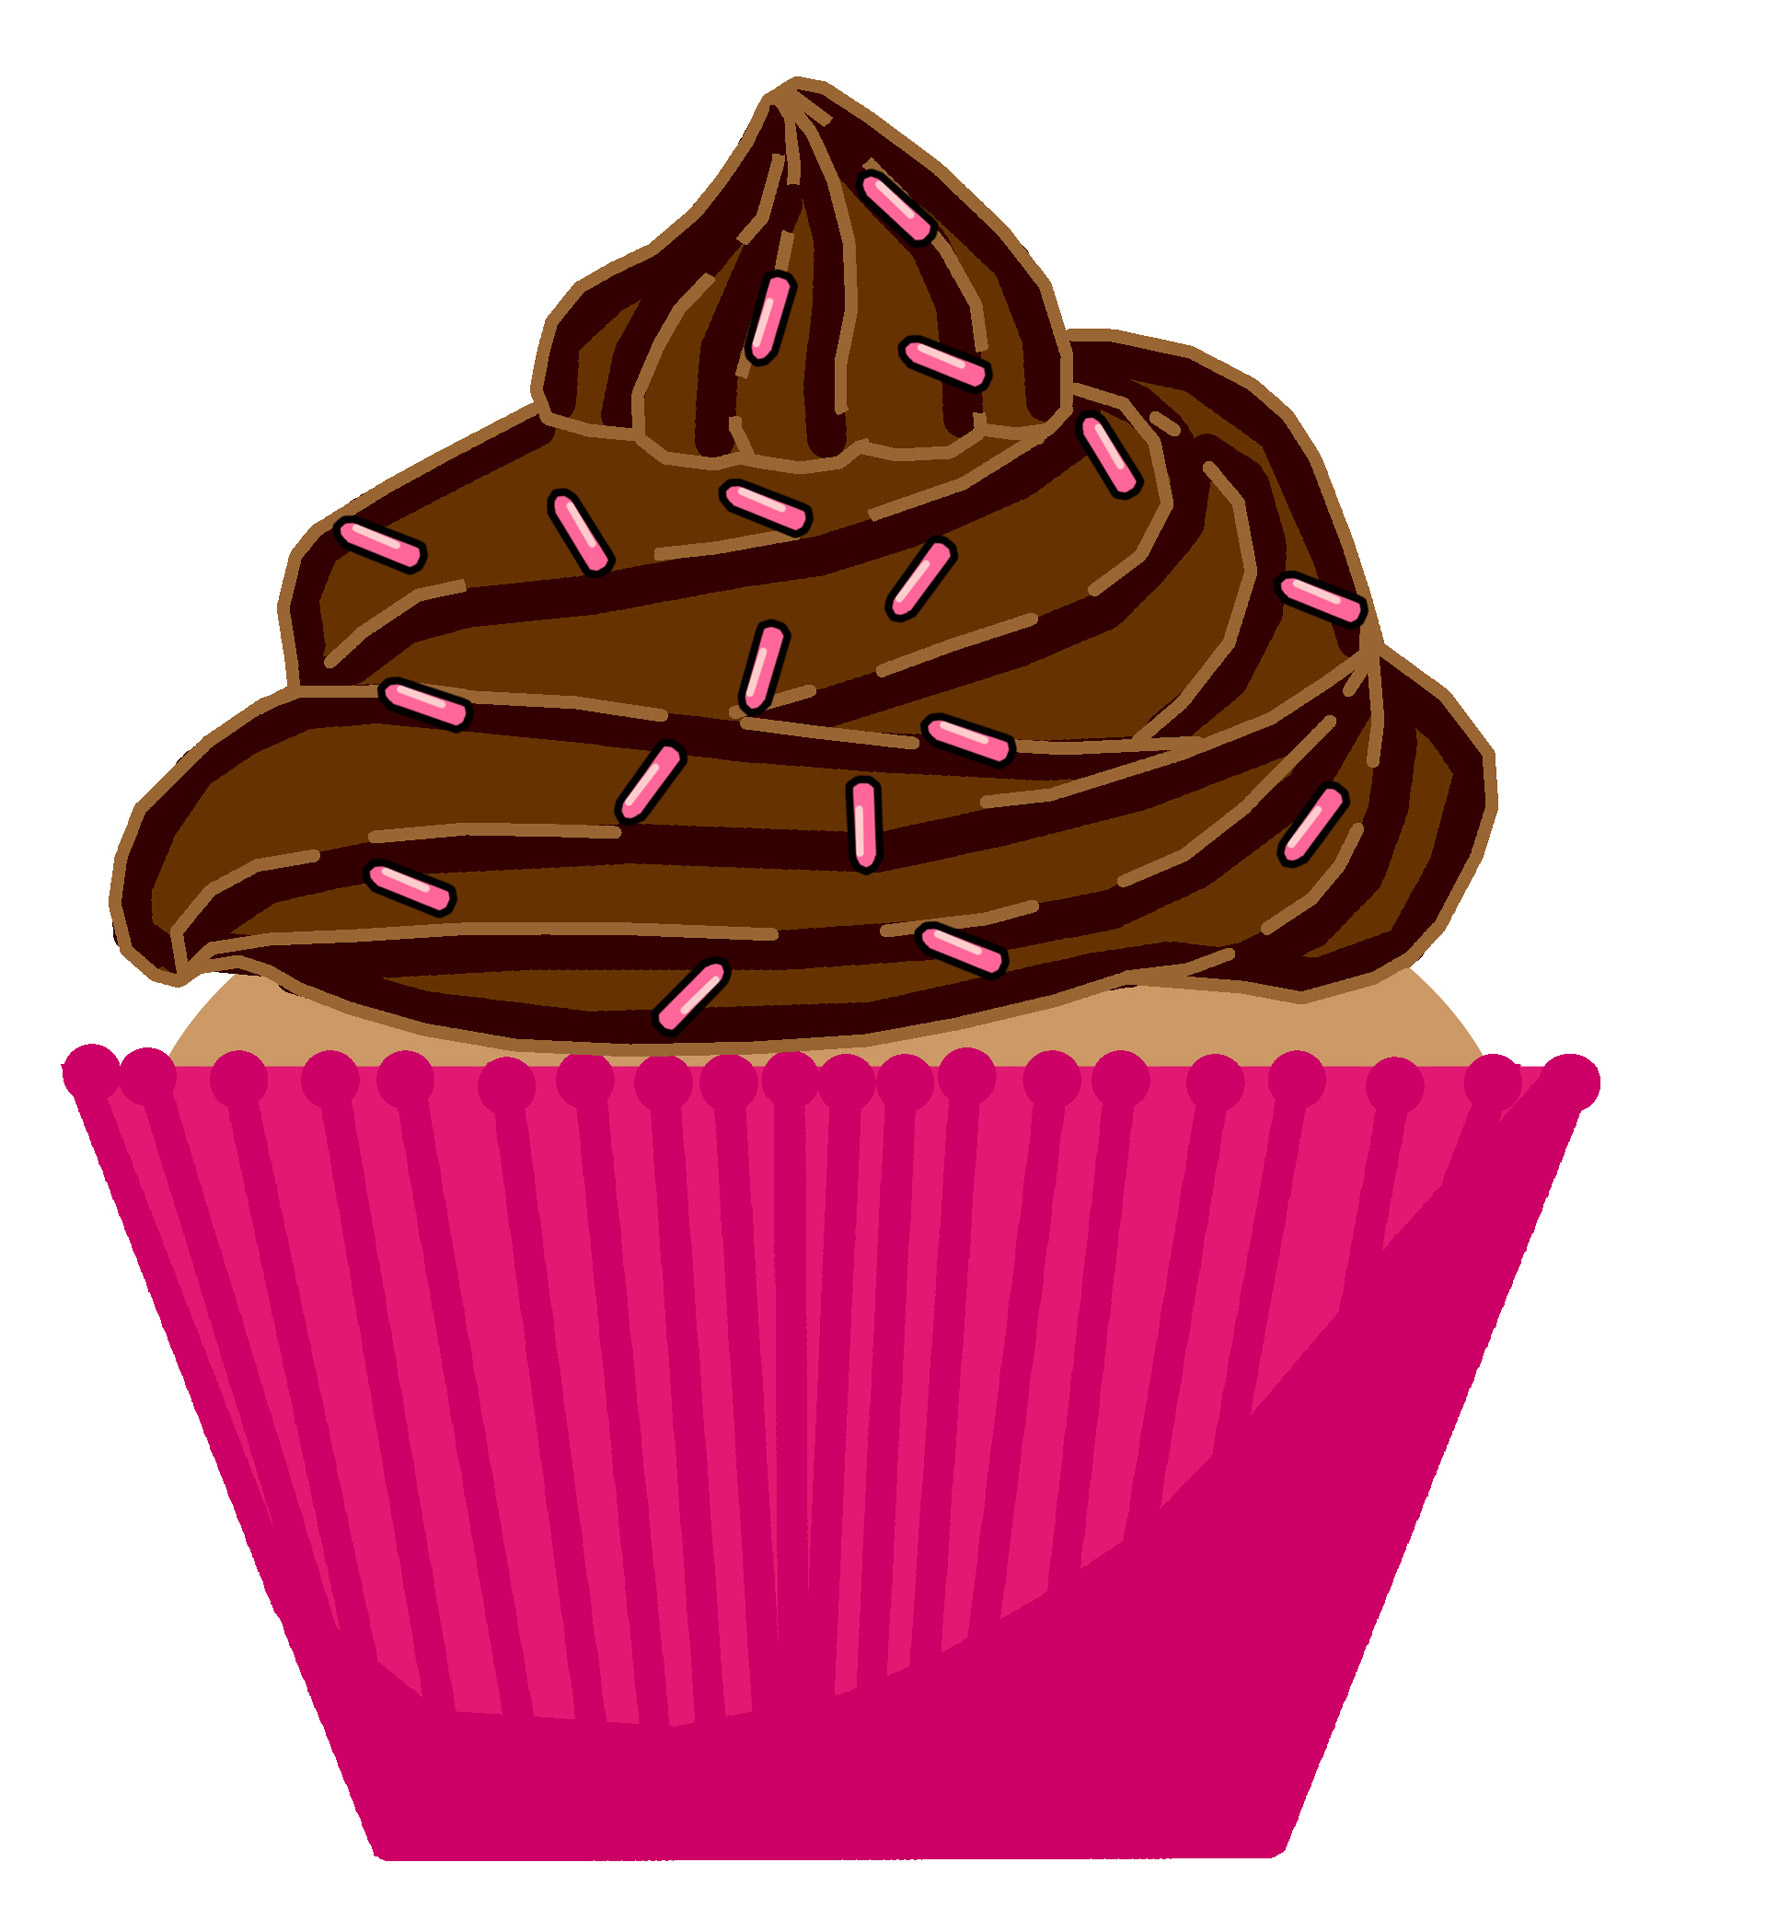 hight resolution of 1767x1920 frosting clipart cupcake sprinkle